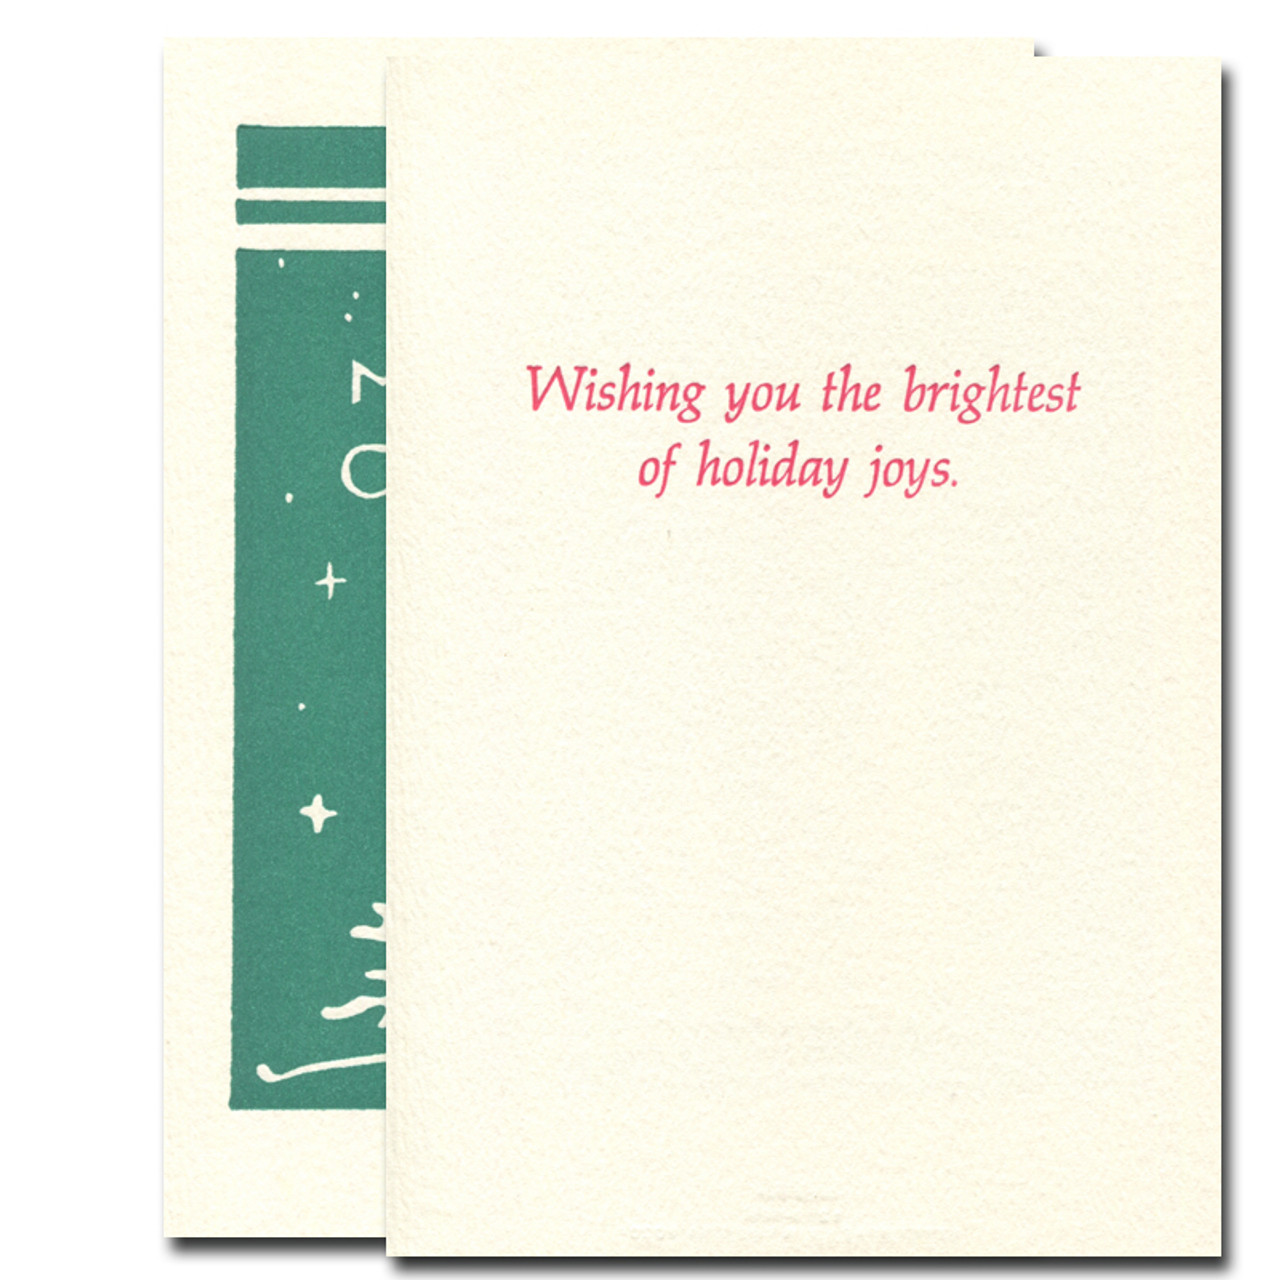 Little Firs letterpress holiday card inside reads: Wishing you the brightest of holiday joys